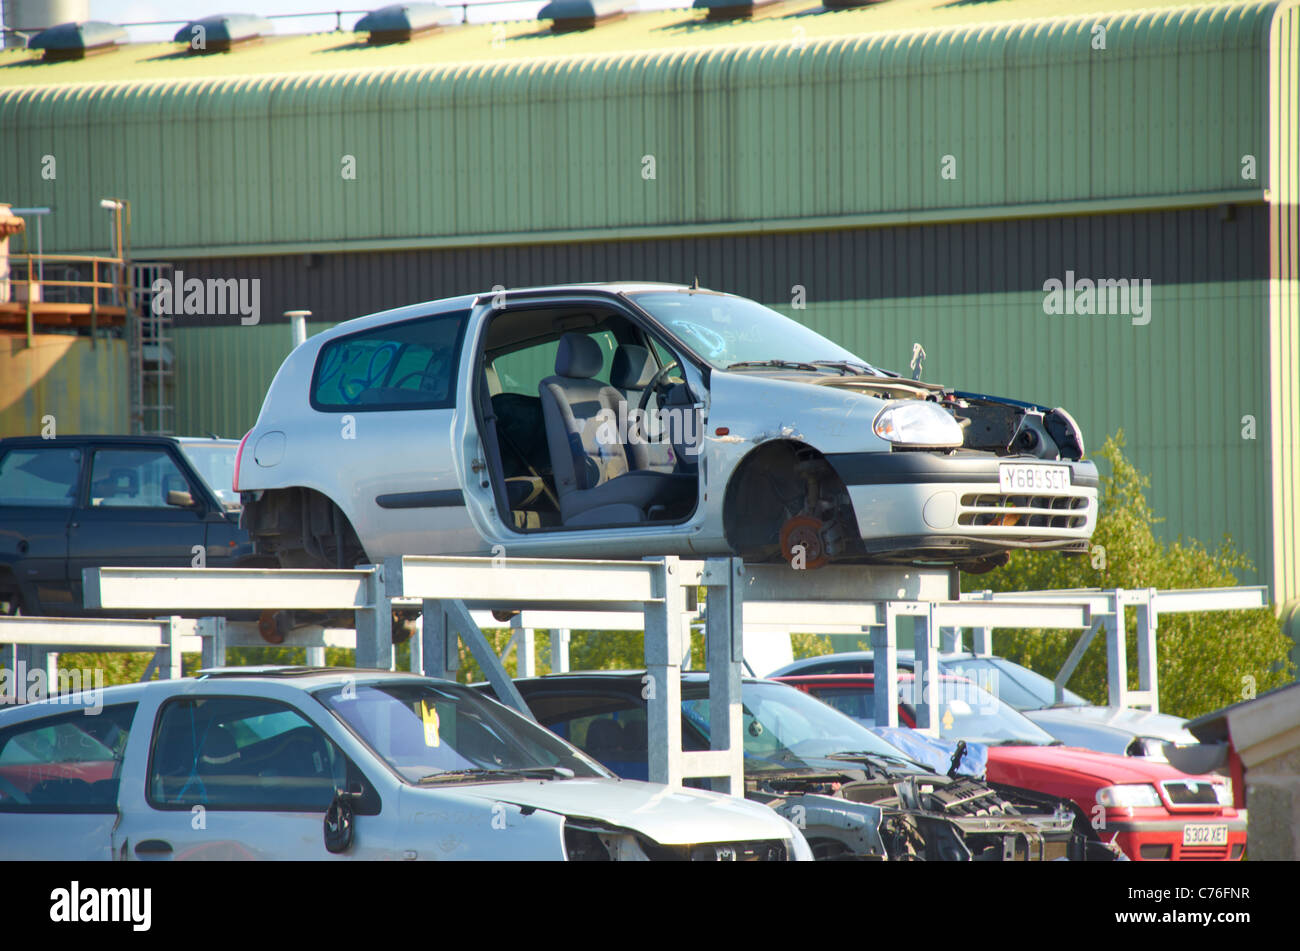 Cars stacked up in a scrapyard. - Stock Image